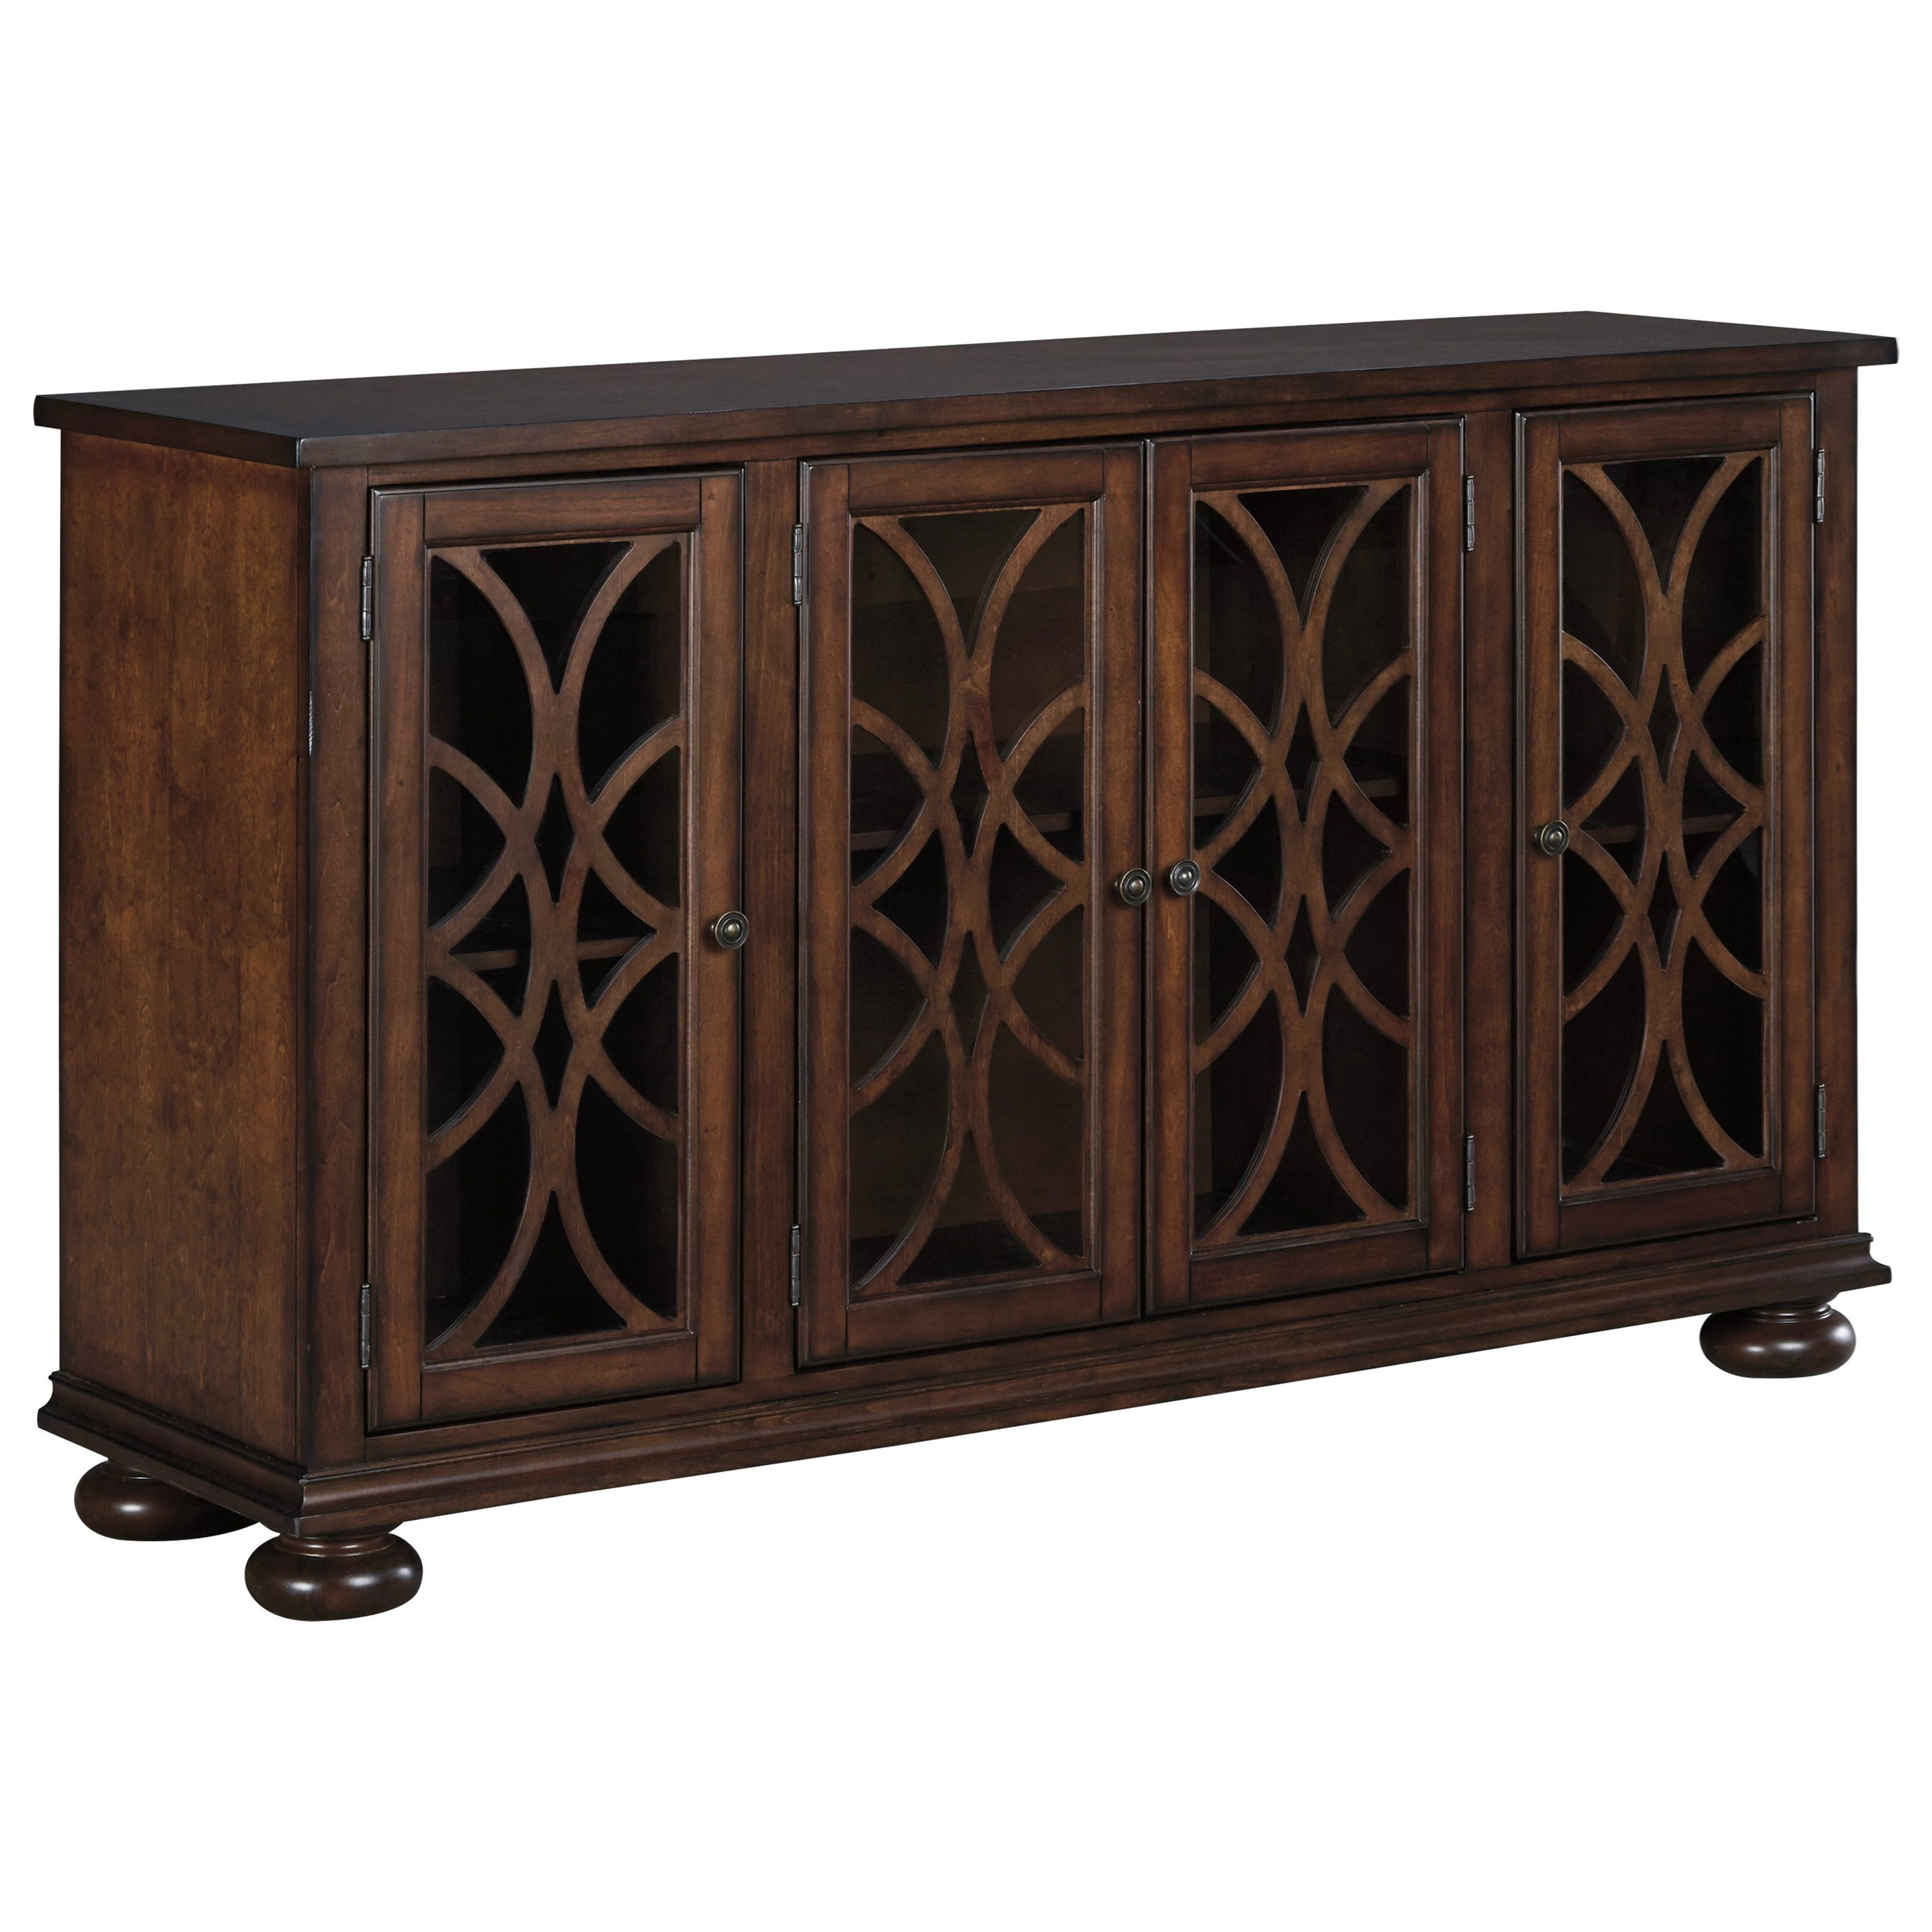 Signature Design By Ashley Baxenburg Dining Room Server   Item Number:  D506 60